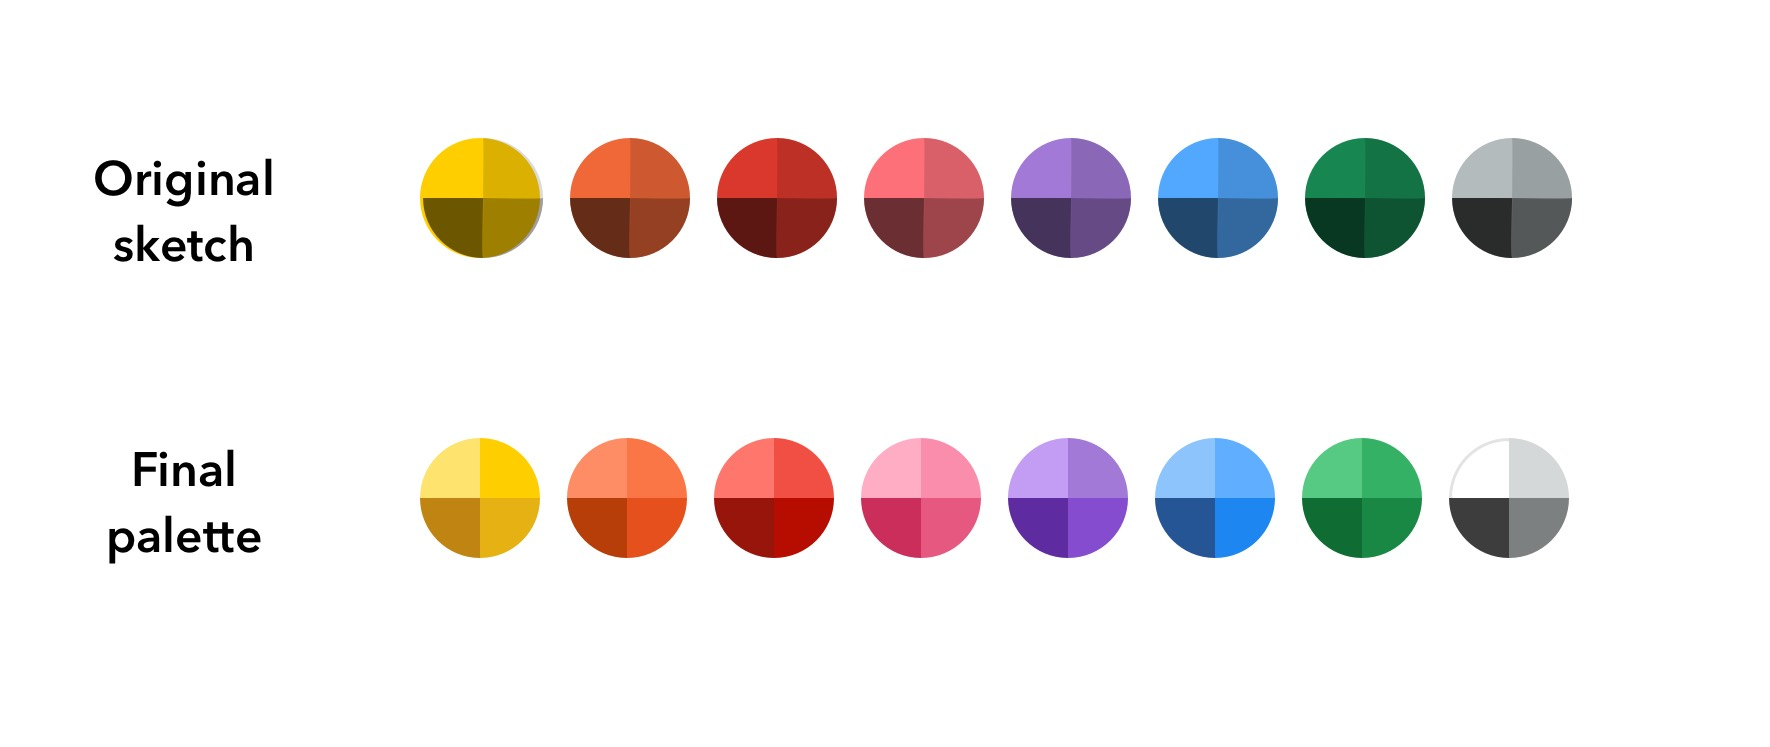 Before/after comparison of how the color family palettes evolved